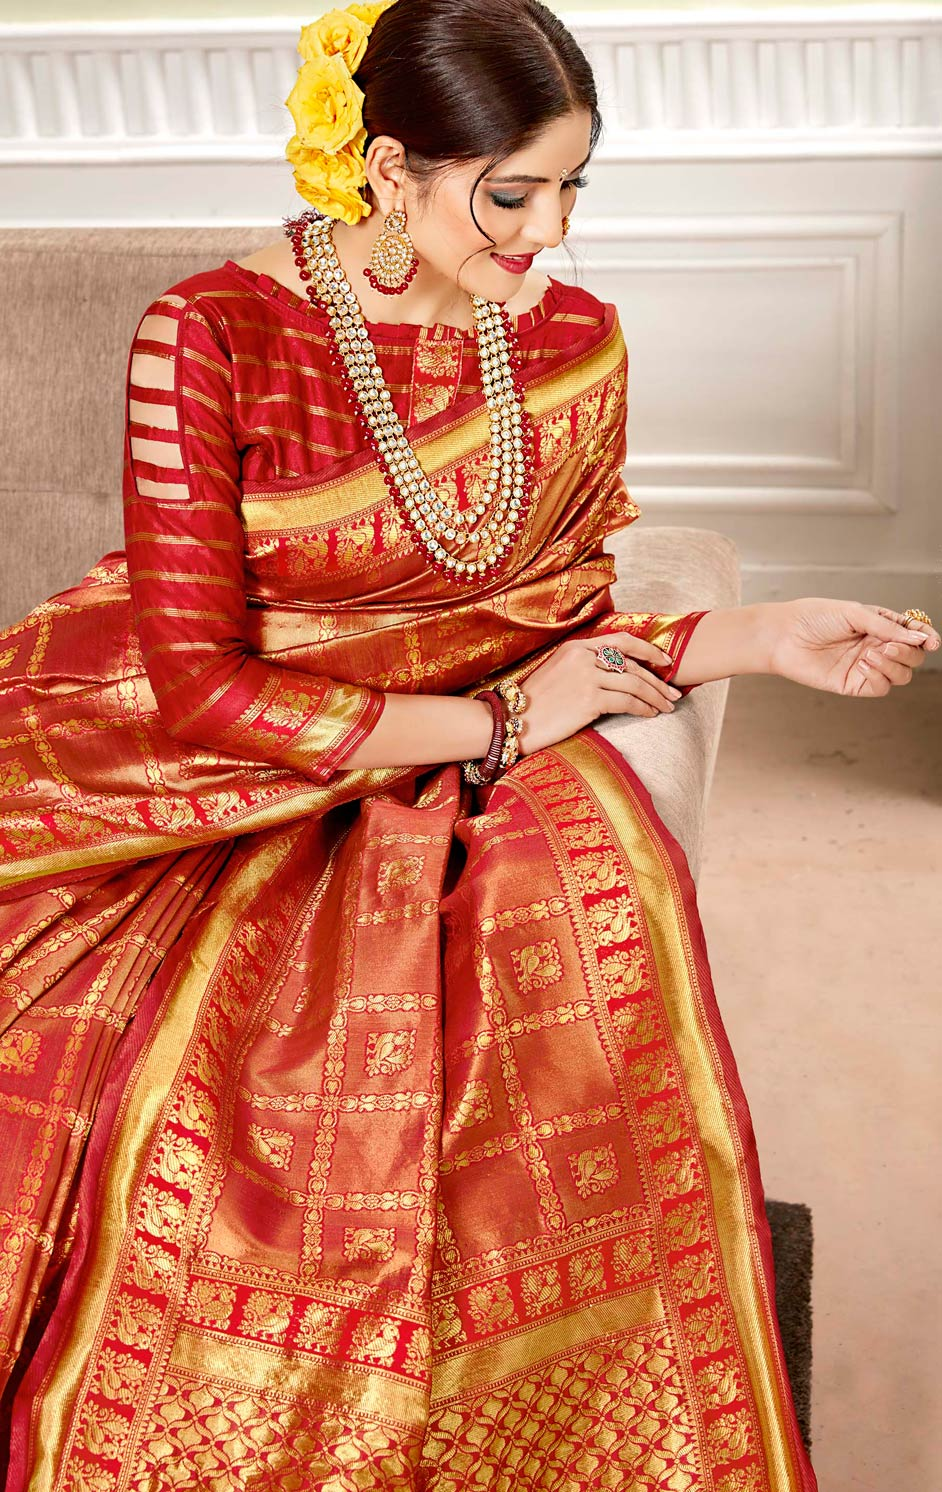 Top Traditional Wedding Sarees That Are Fervently Desired by Modern Indian Brides